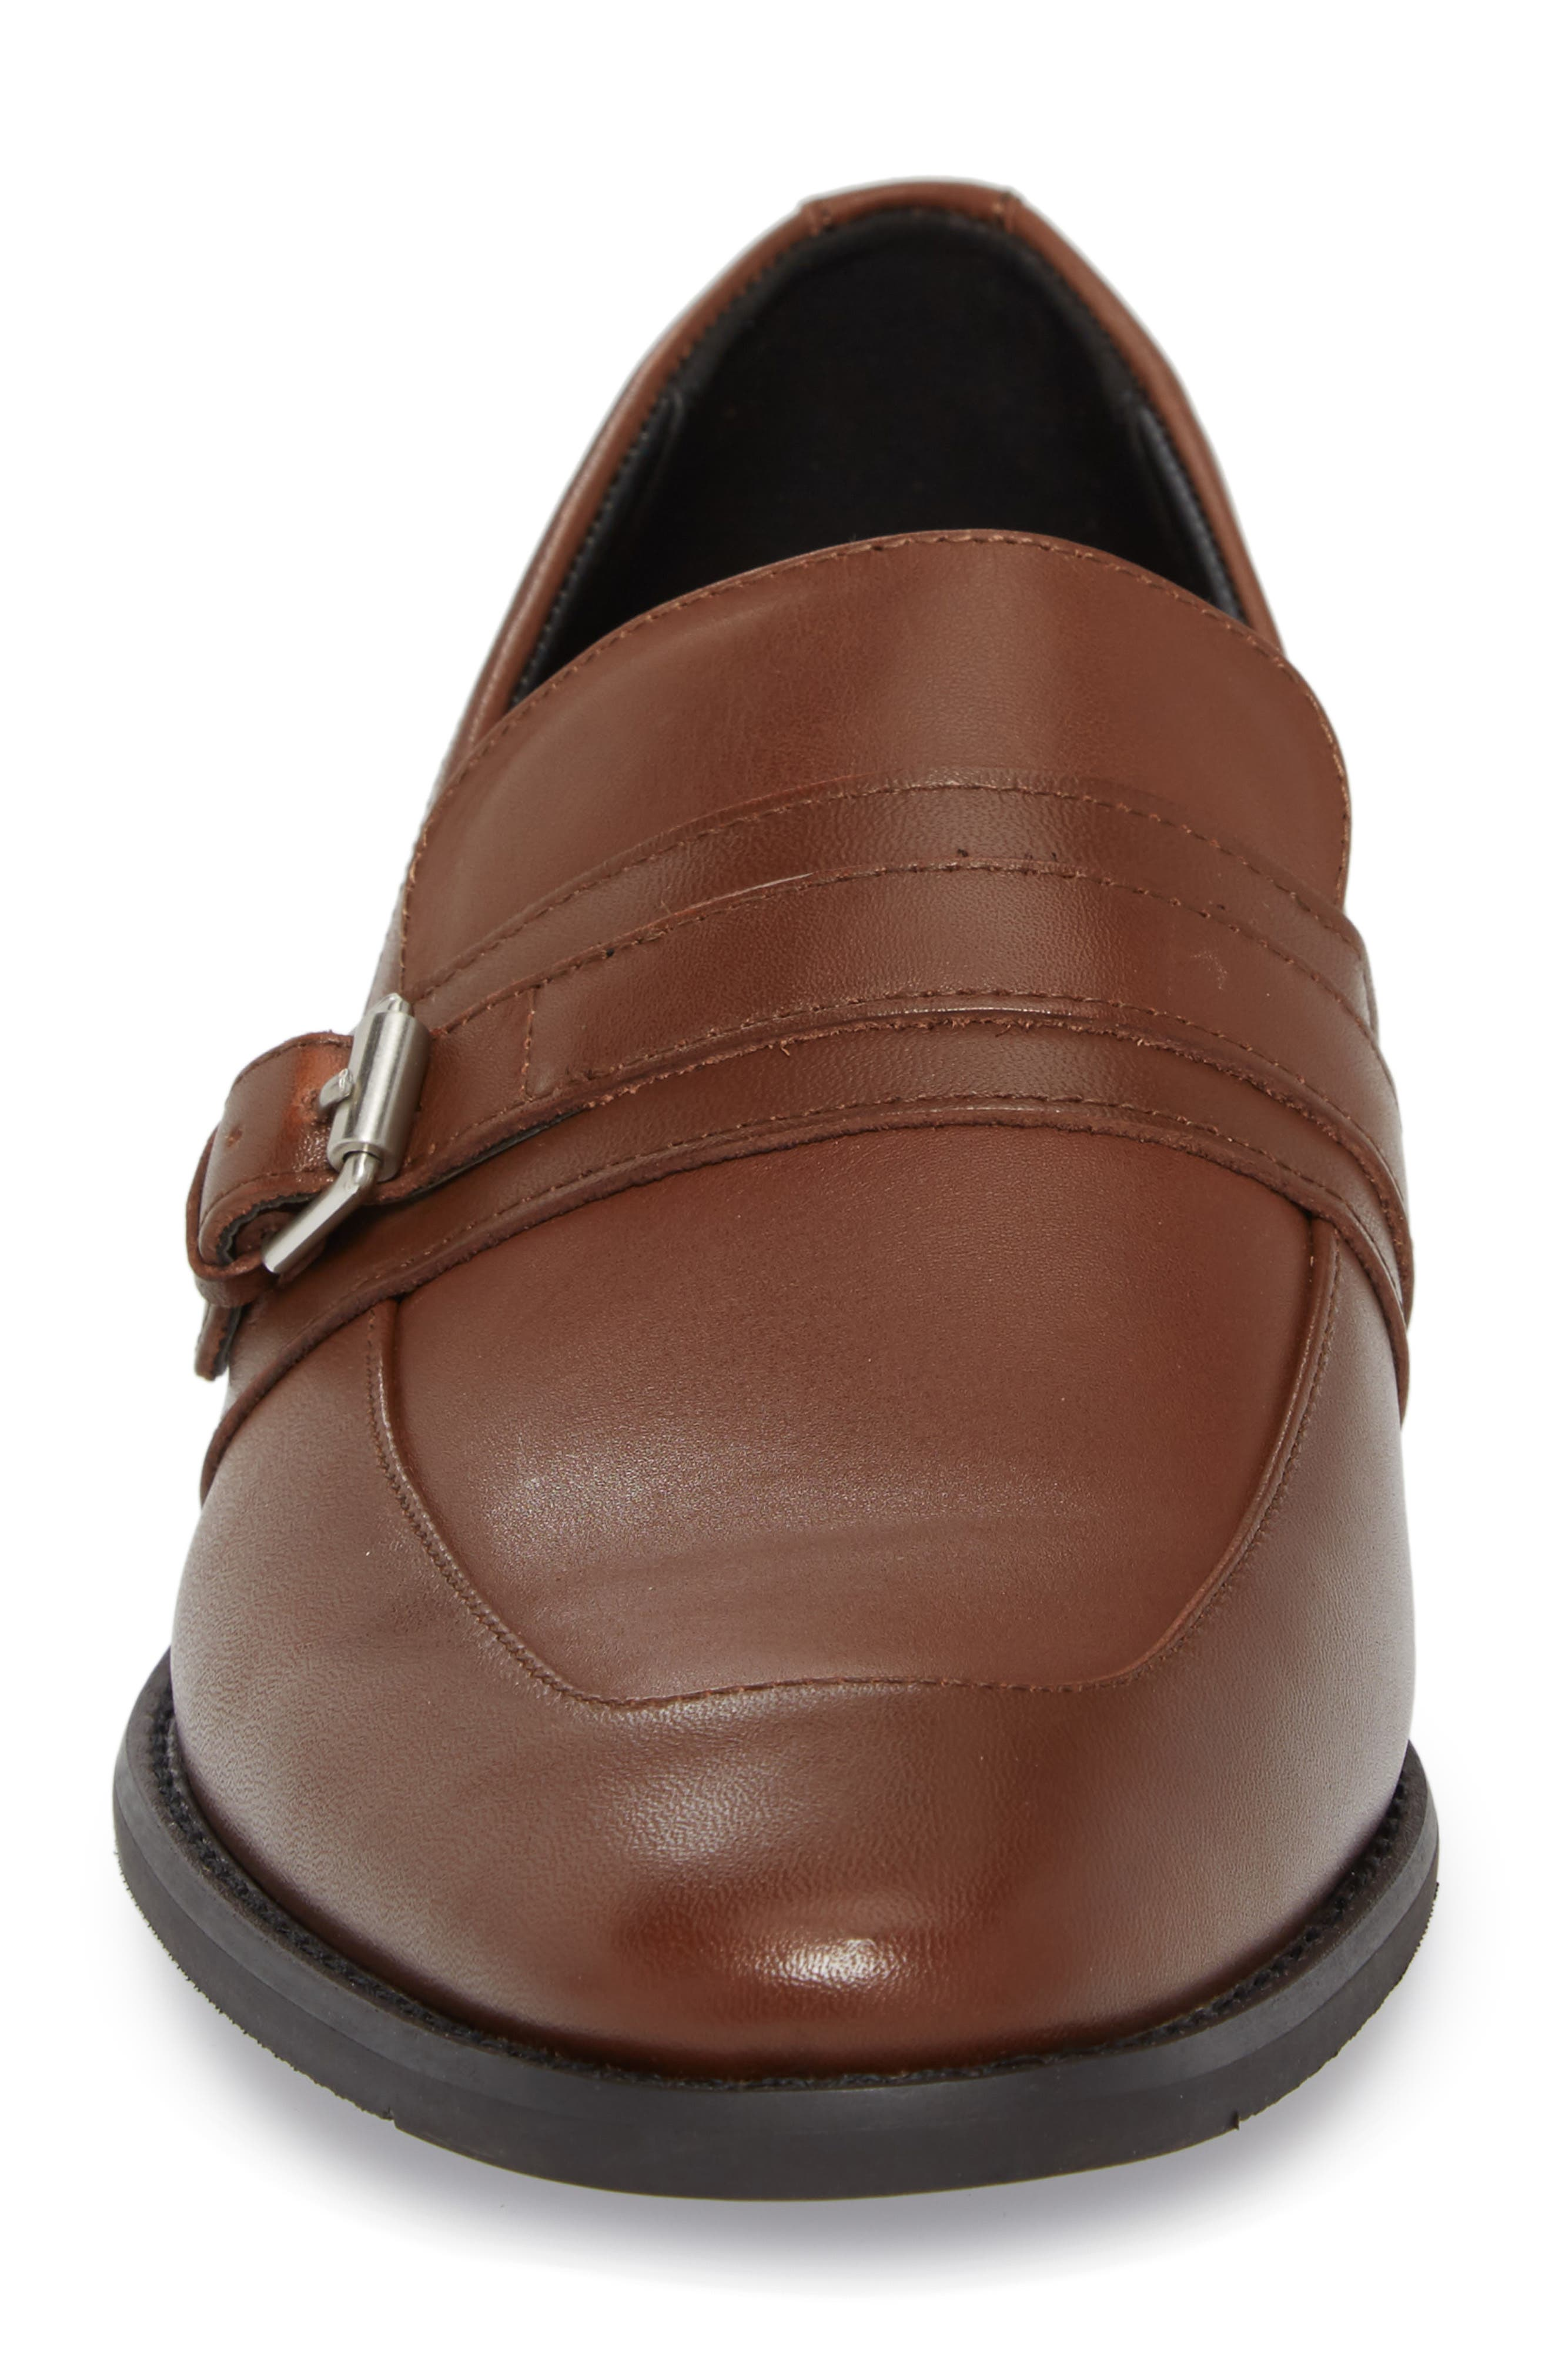 Reyes Loafer,                             Alternate thumbnail 4, color,                             Tan Leather